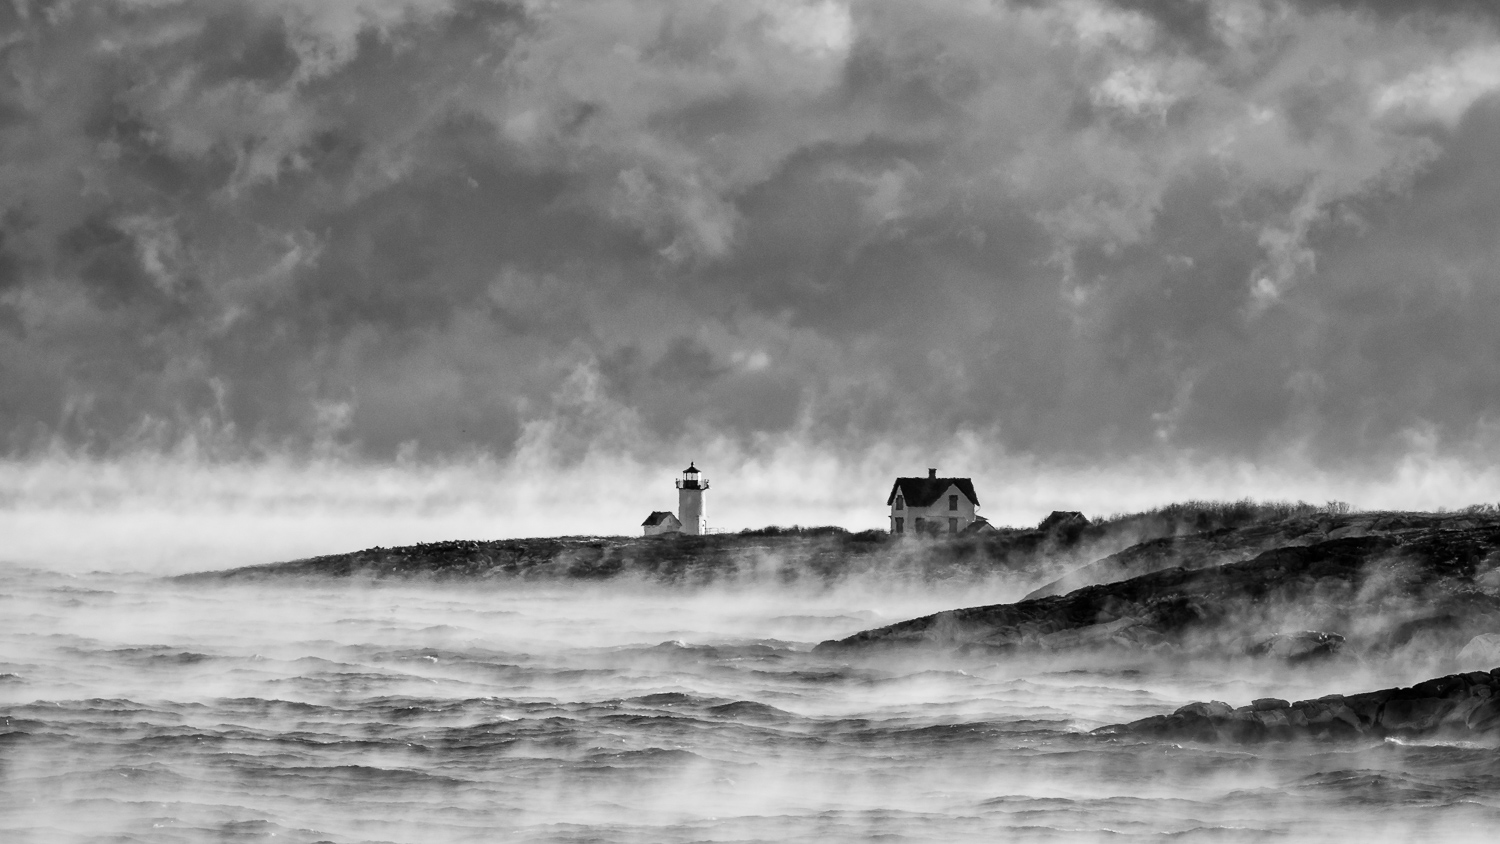 Nikon D500, 1/125 @ f/10, ISO 100, 70-200mm with 1.4x teleconverter  Straitsmouth Island Light